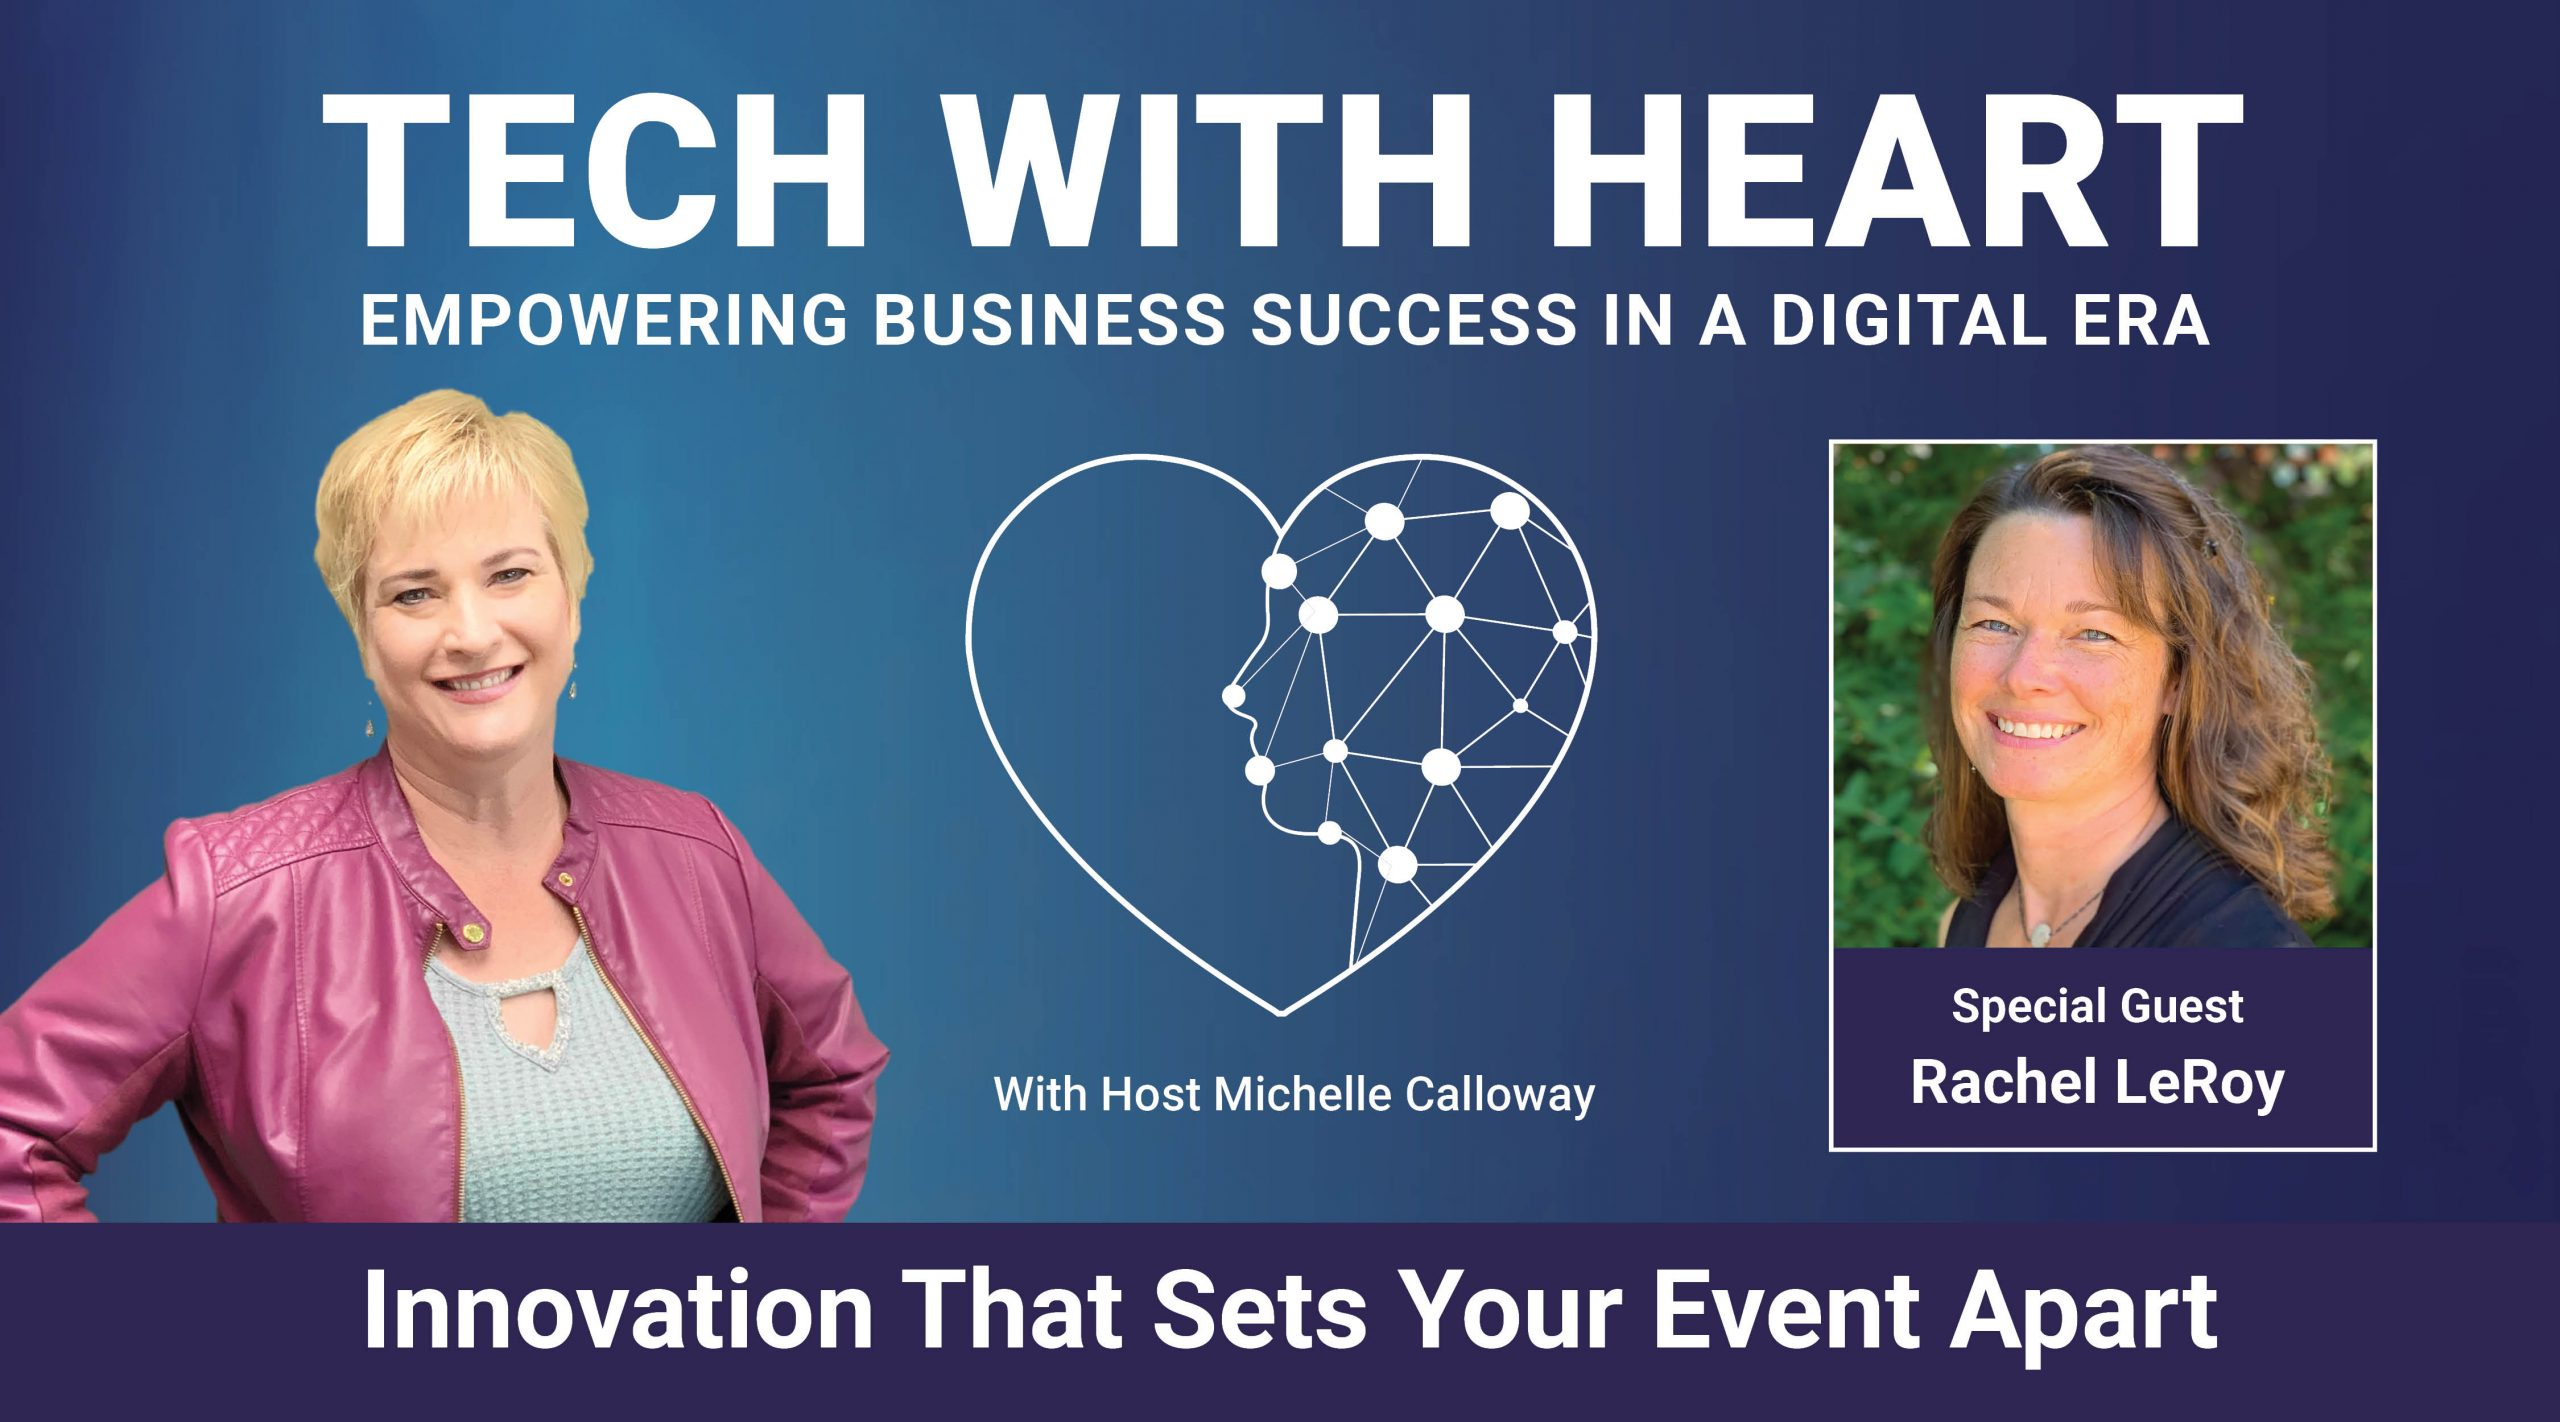 Innovation That Sets Your Event Apart - A Tech With Heart Interview with Rachel LeRoy